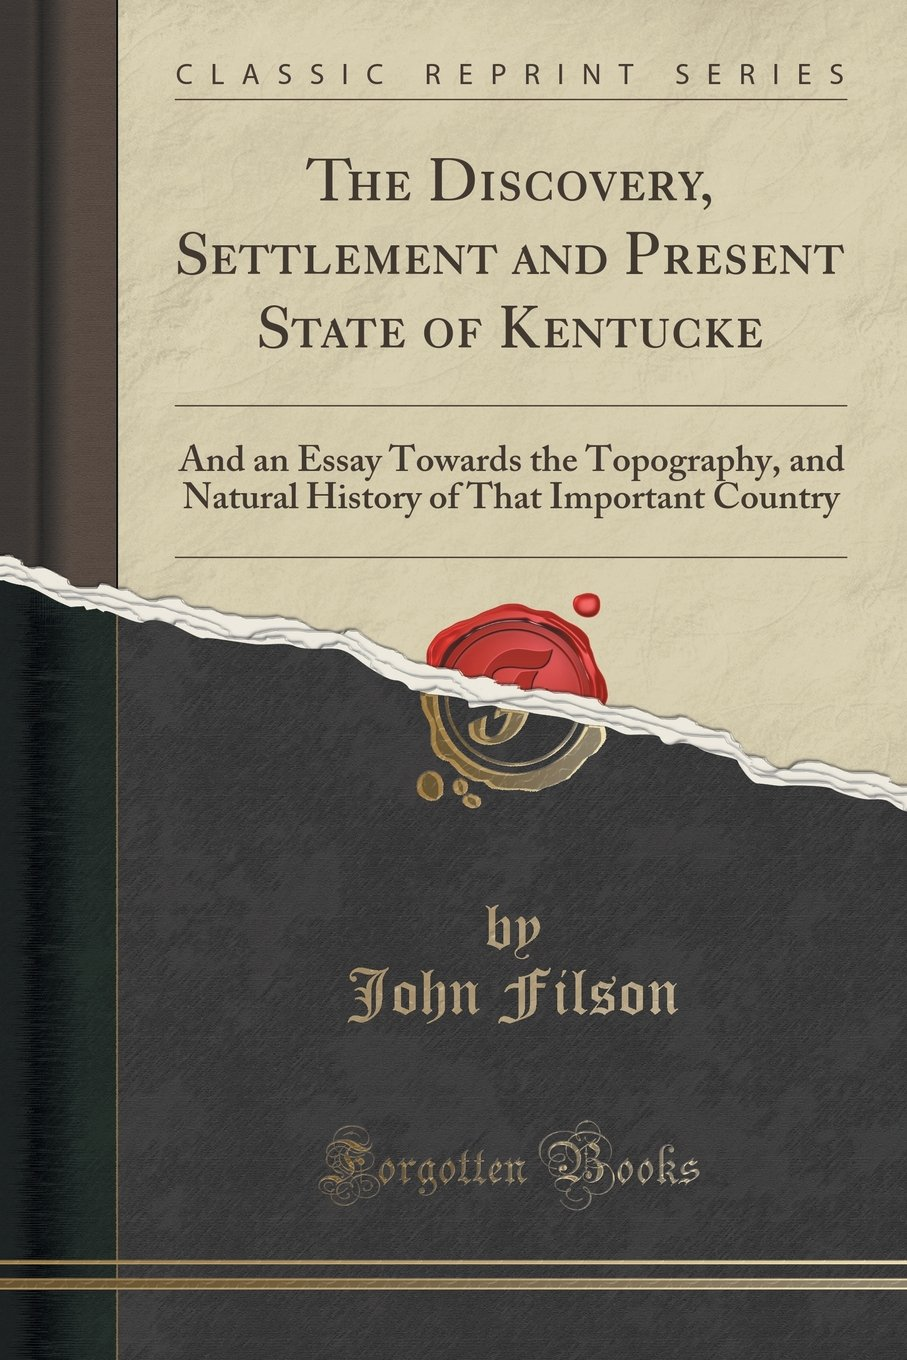 Download The Discovery, Settlement and Present State of Kentucke: And an Essay Towards the Topography, and Natural History of That Important Country (Classic Reprint) ebook